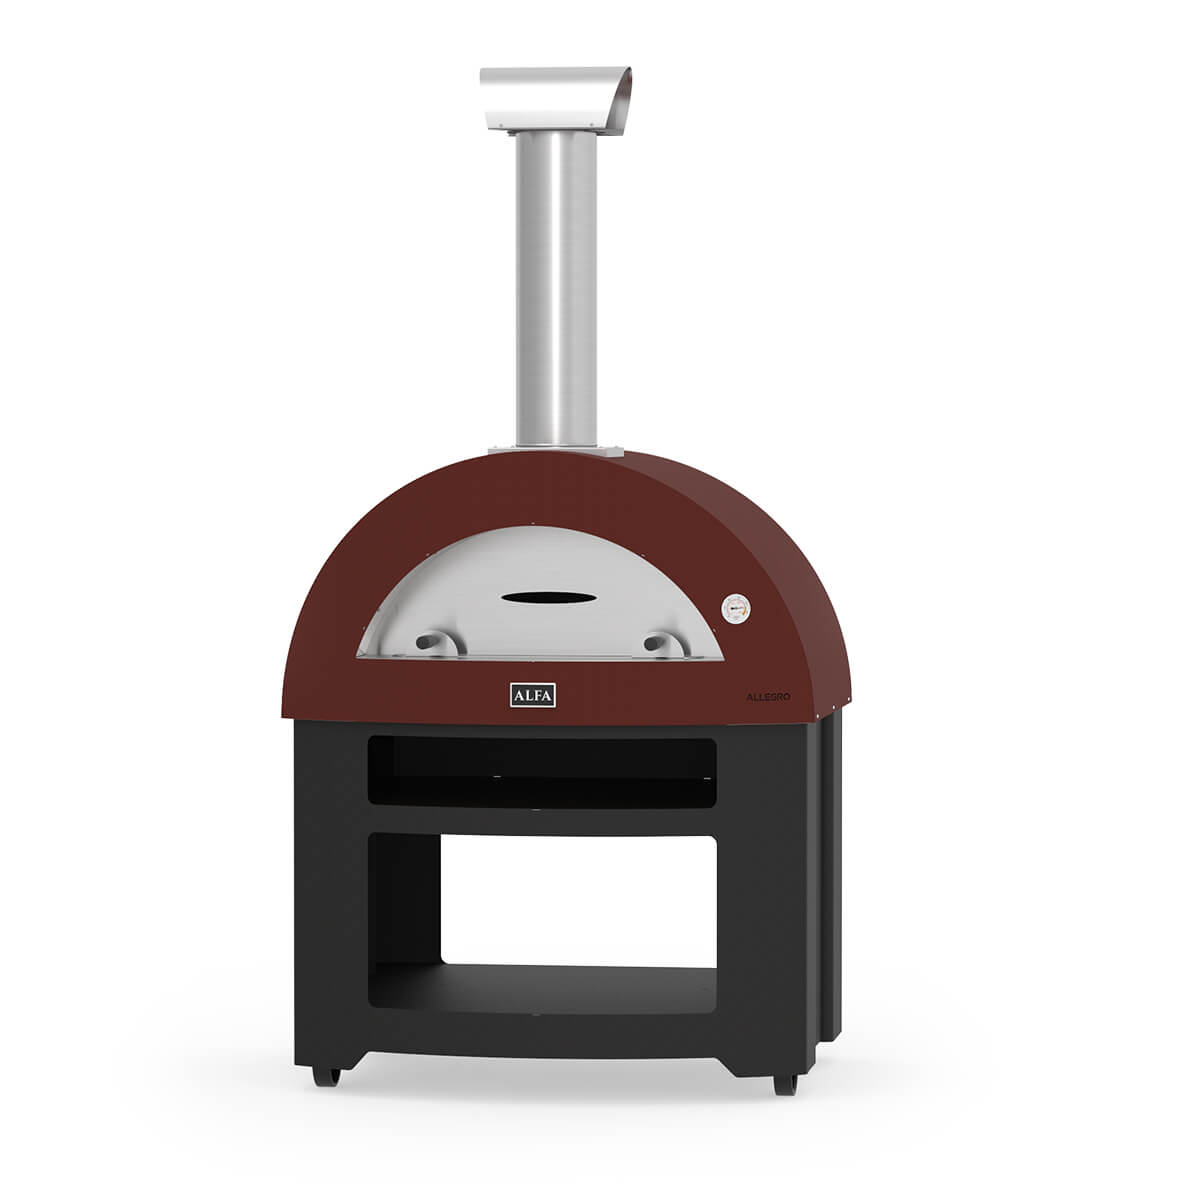 allegro-base-red-wood-alfa-forni-domestic-ovens